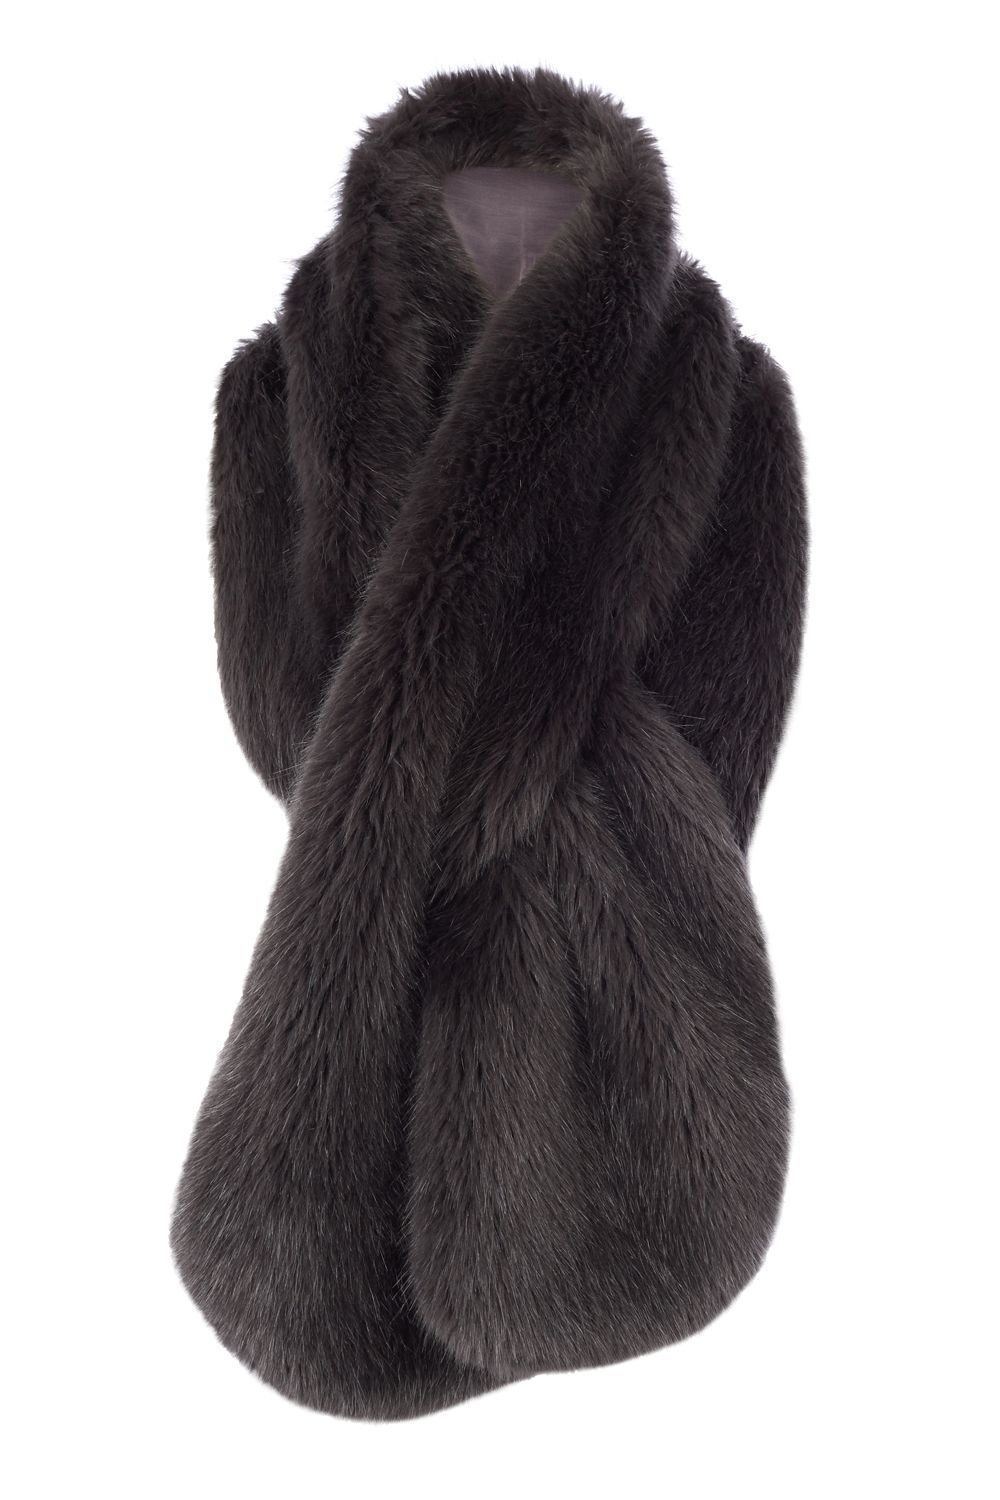 Luella Longline Fur Scarf, Grey - predominant colour: charcoal; occasions: evening, creative work; type of pattern: standard; size: large; material: faux fur; pattern: plain; style: stole; wardrobe: basic; season: a/w 2016